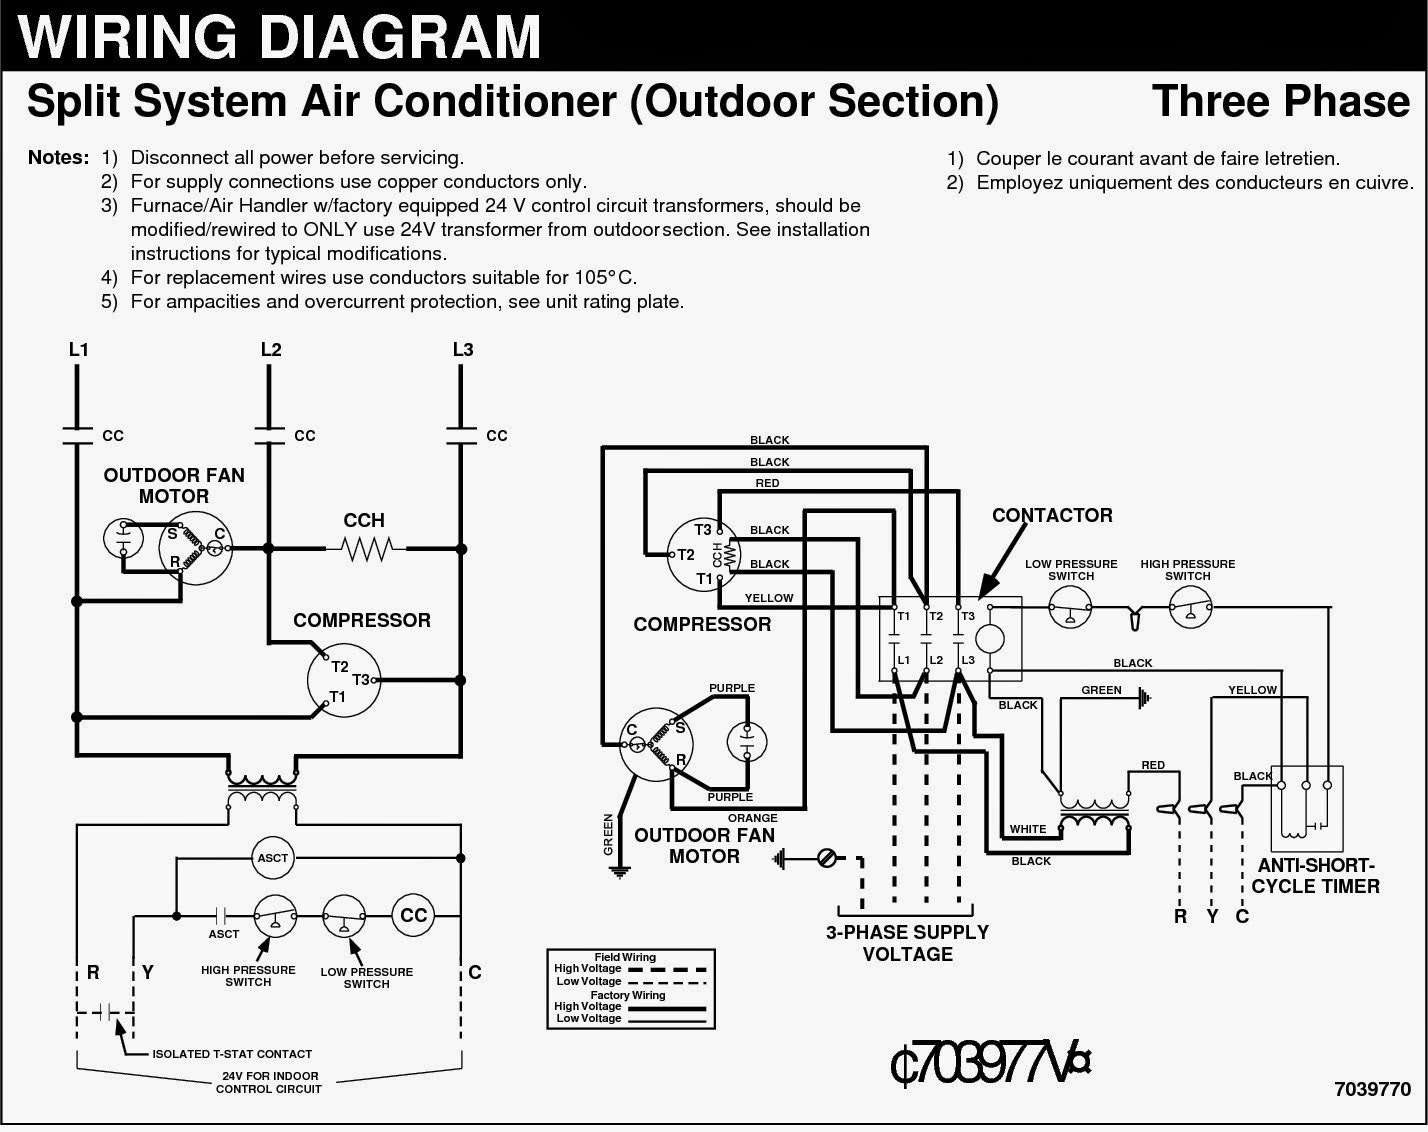 Wiring Diagram For Aircon | Wiring Library - Air Conditioner Wiring Diagram Pdf